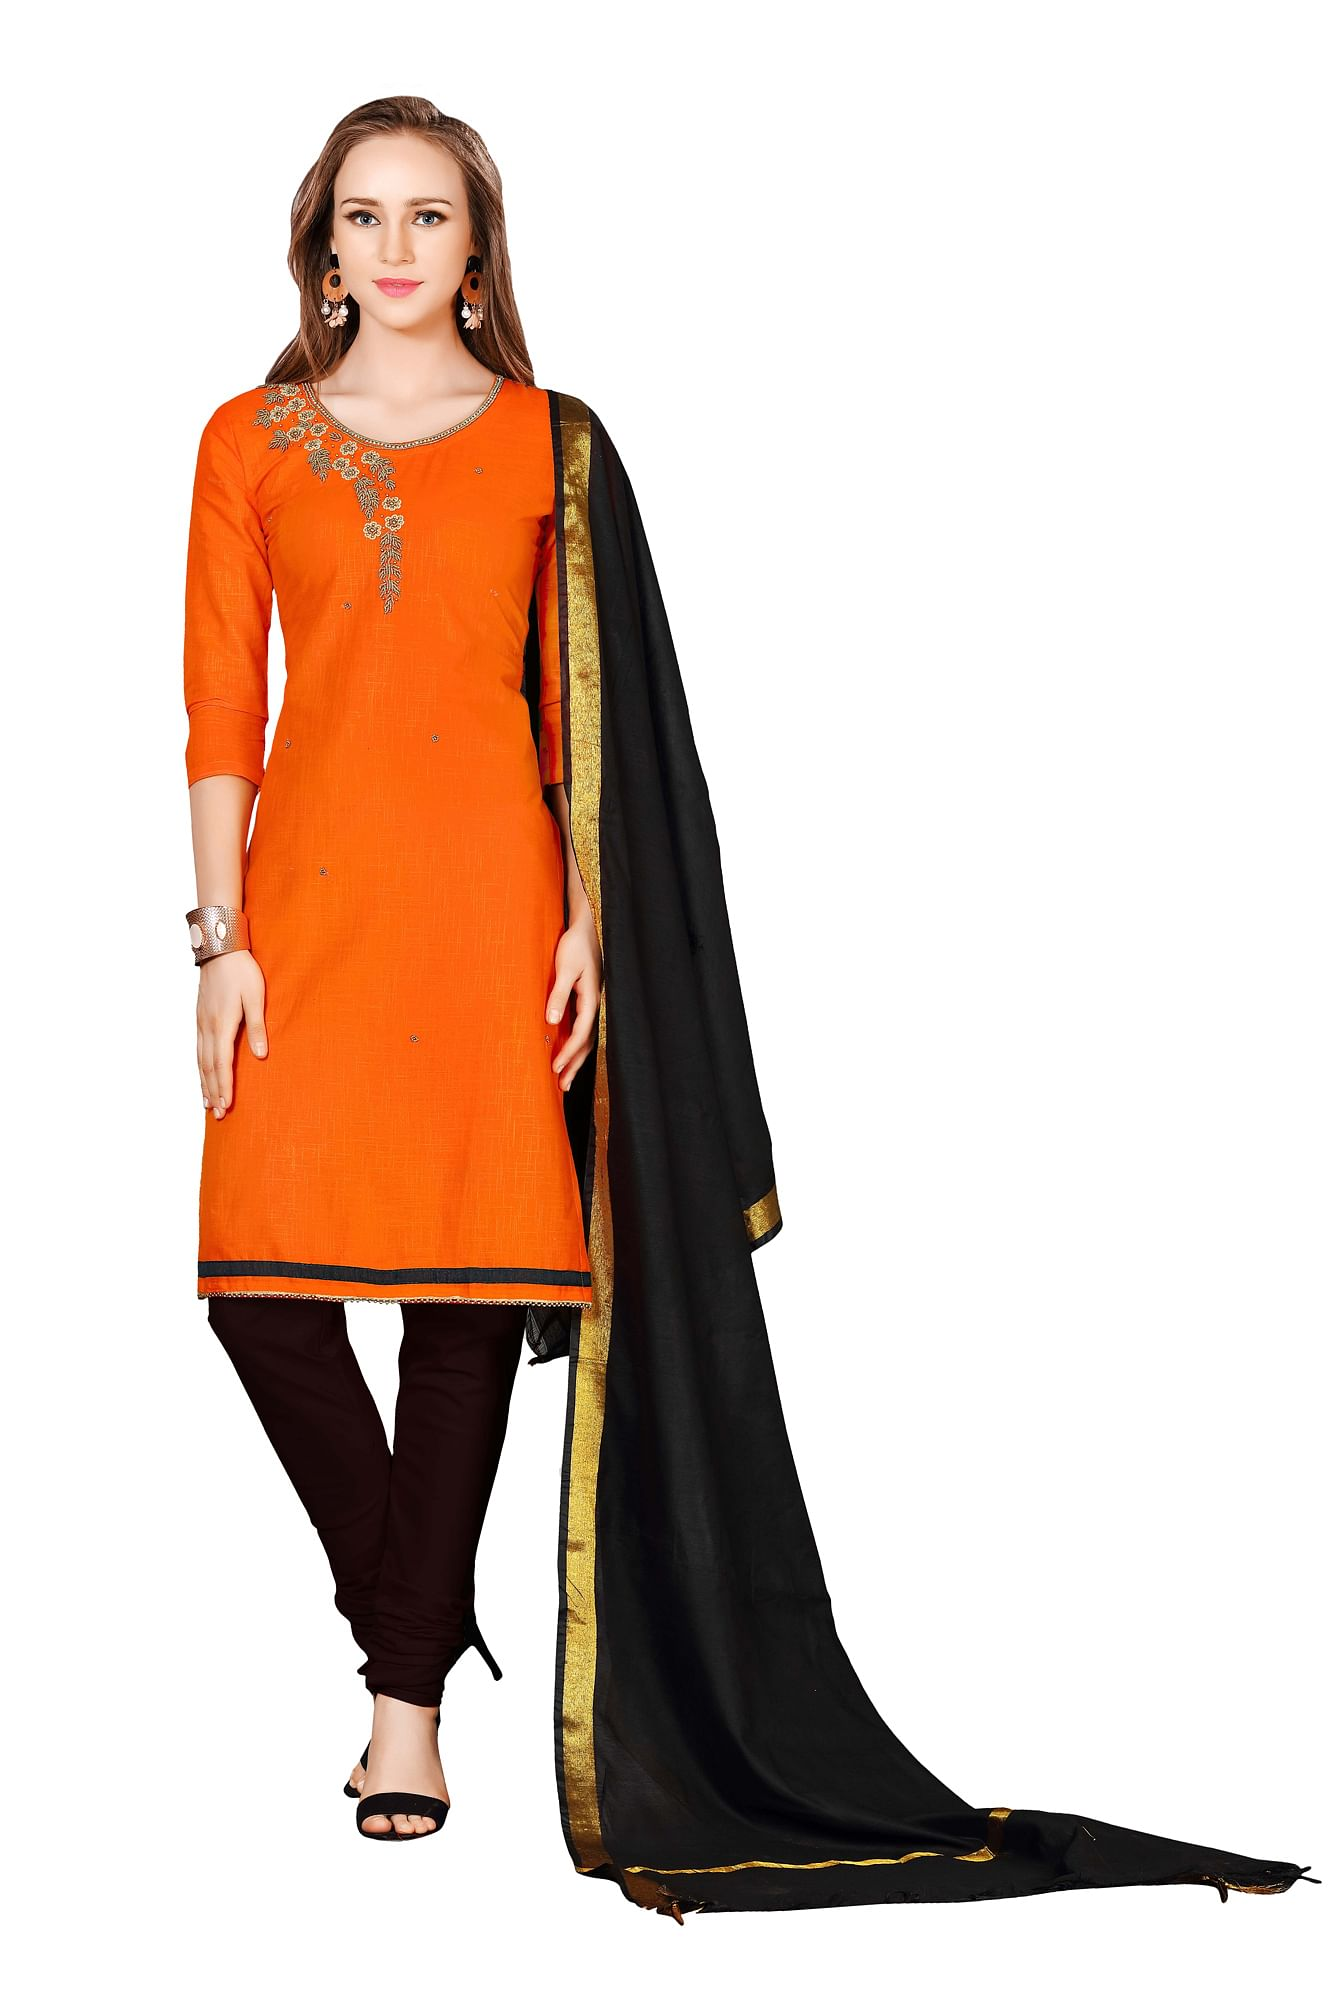 Charming Orange-Black Colored Embroidered Chanderi Cotton Dress Material